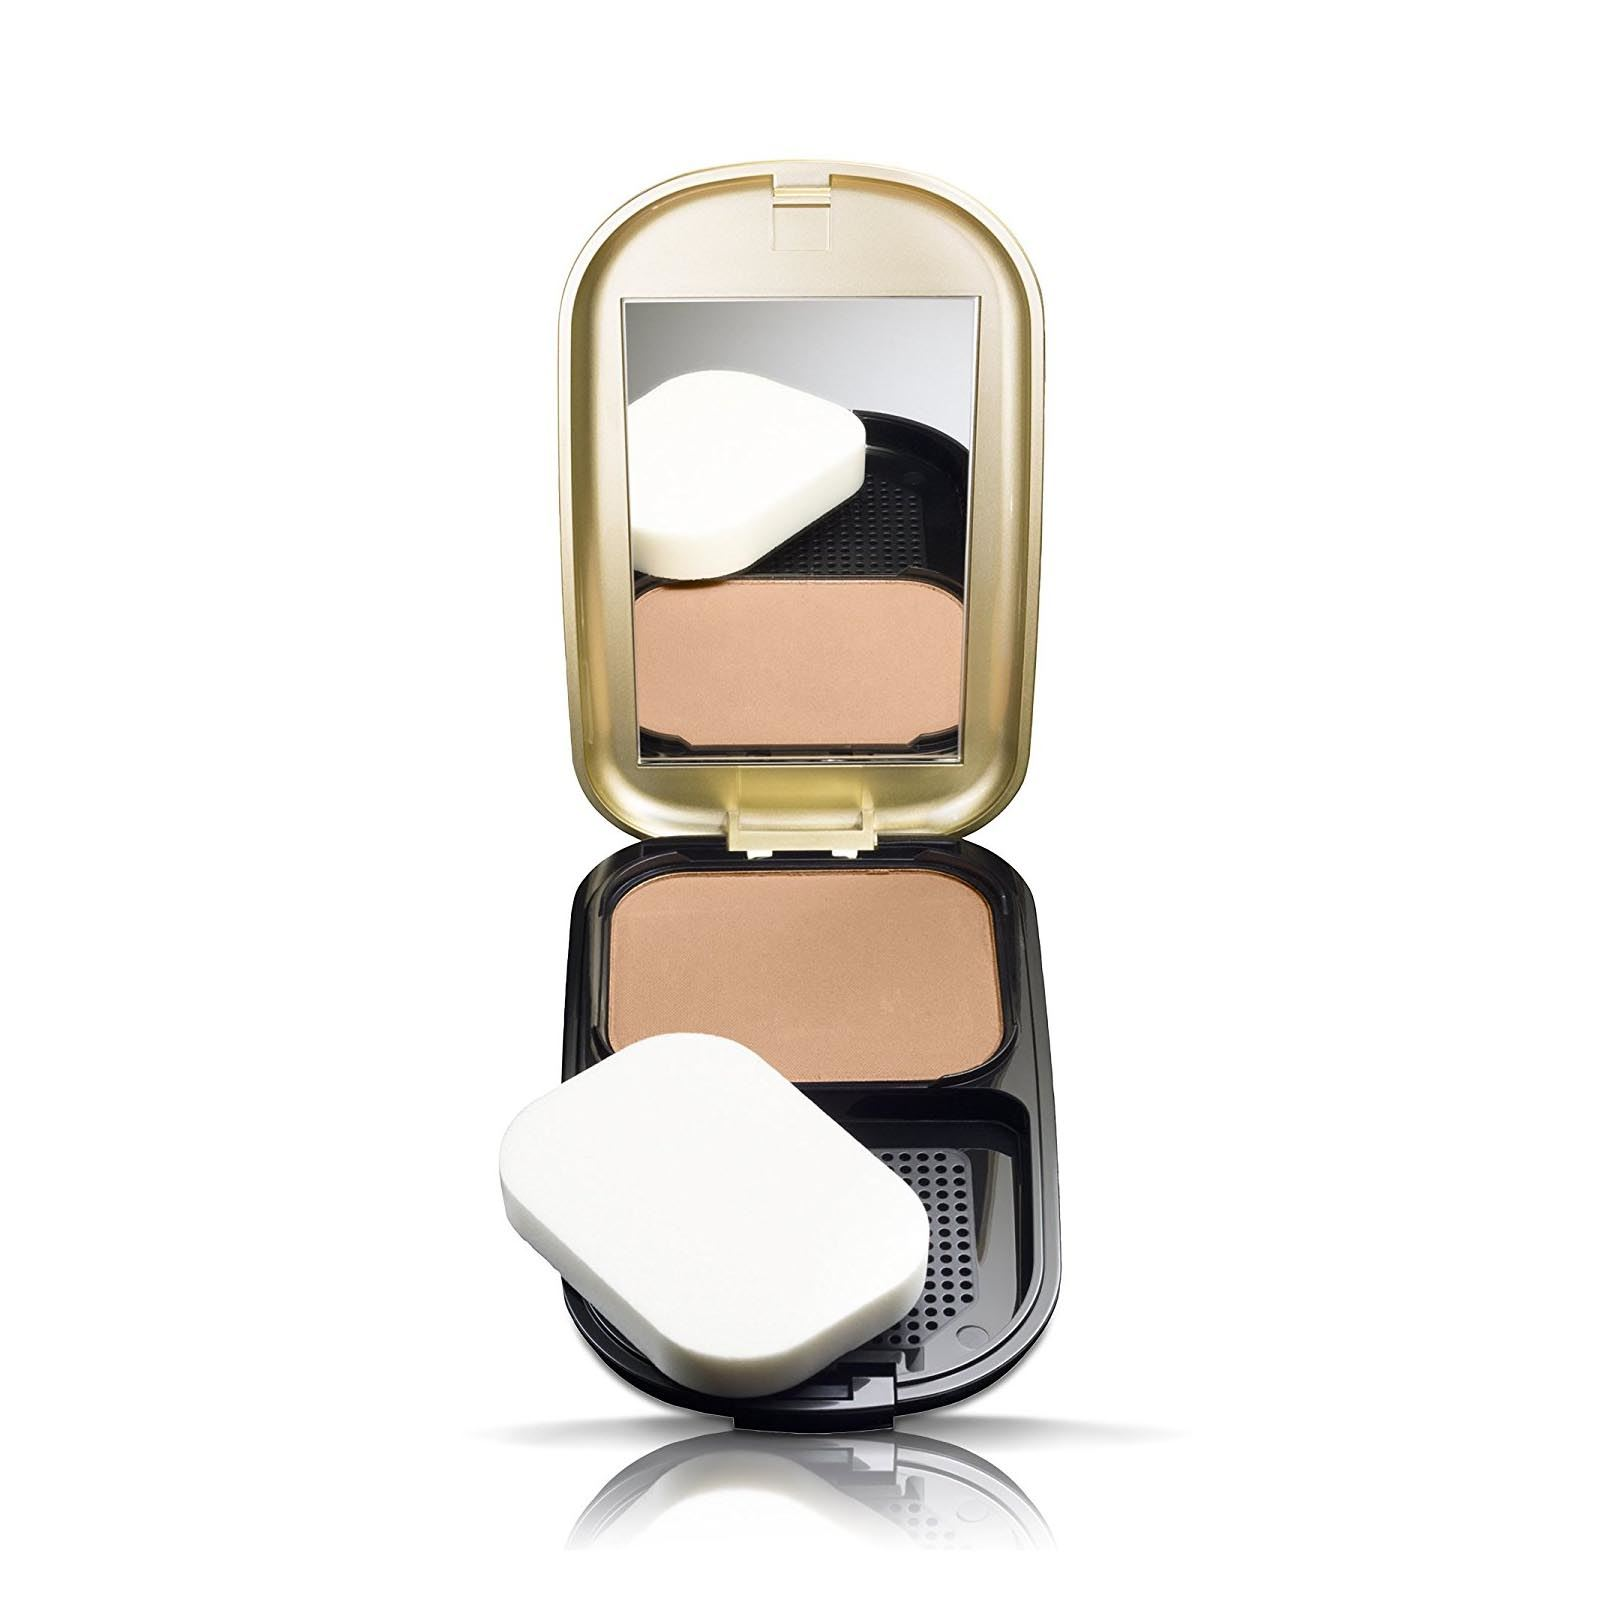 Max Factor Pressed Powder Face Finity Compact 10g Golden 006